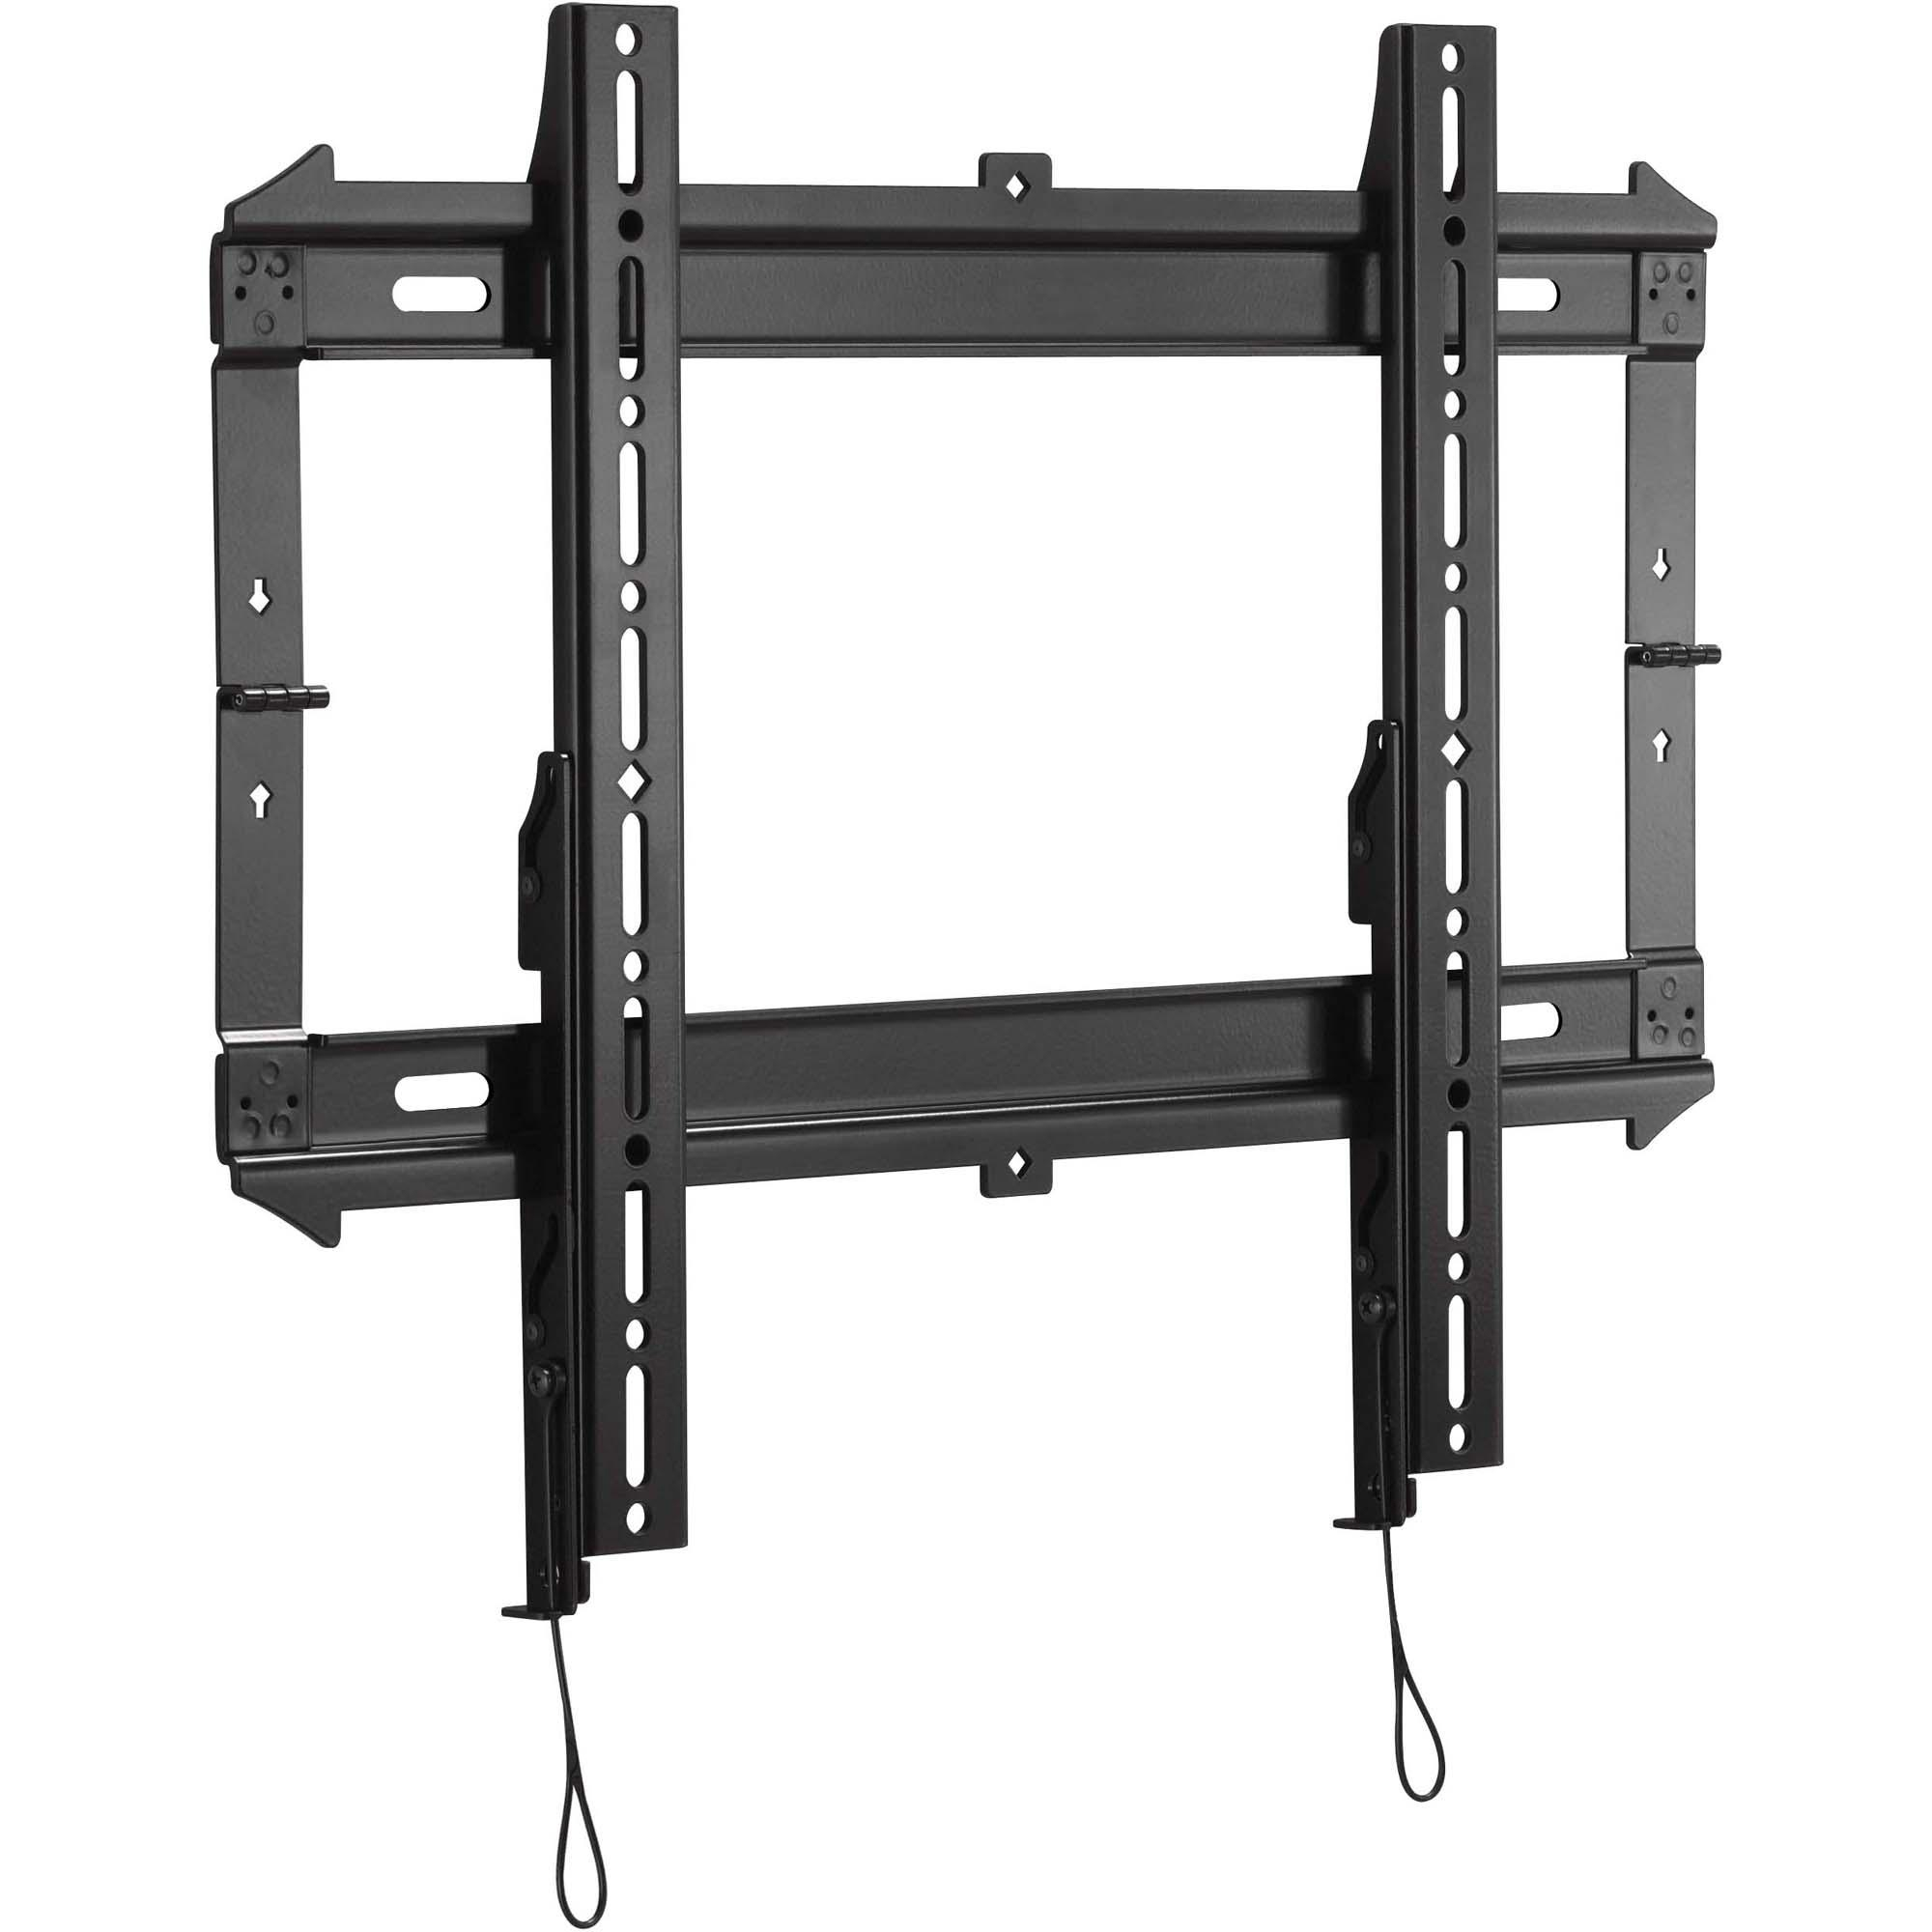 "Chief RMF2 Wall Mount for Flat Panel Display - 26"" to 42"" Screen (Refurbished)"